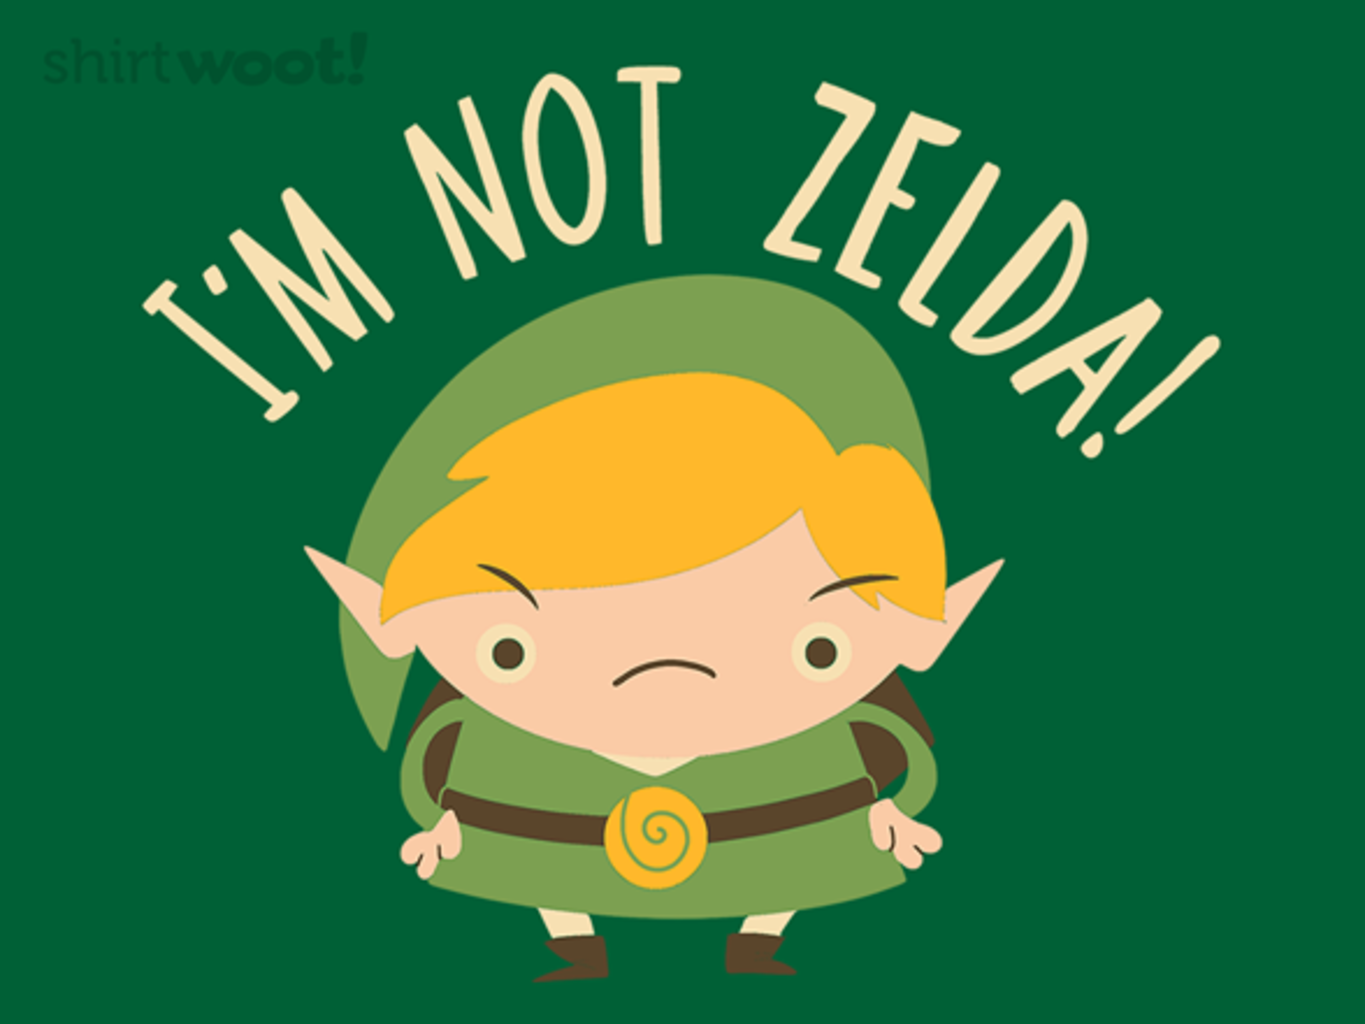 Woot!: A Zelda is a Zelda